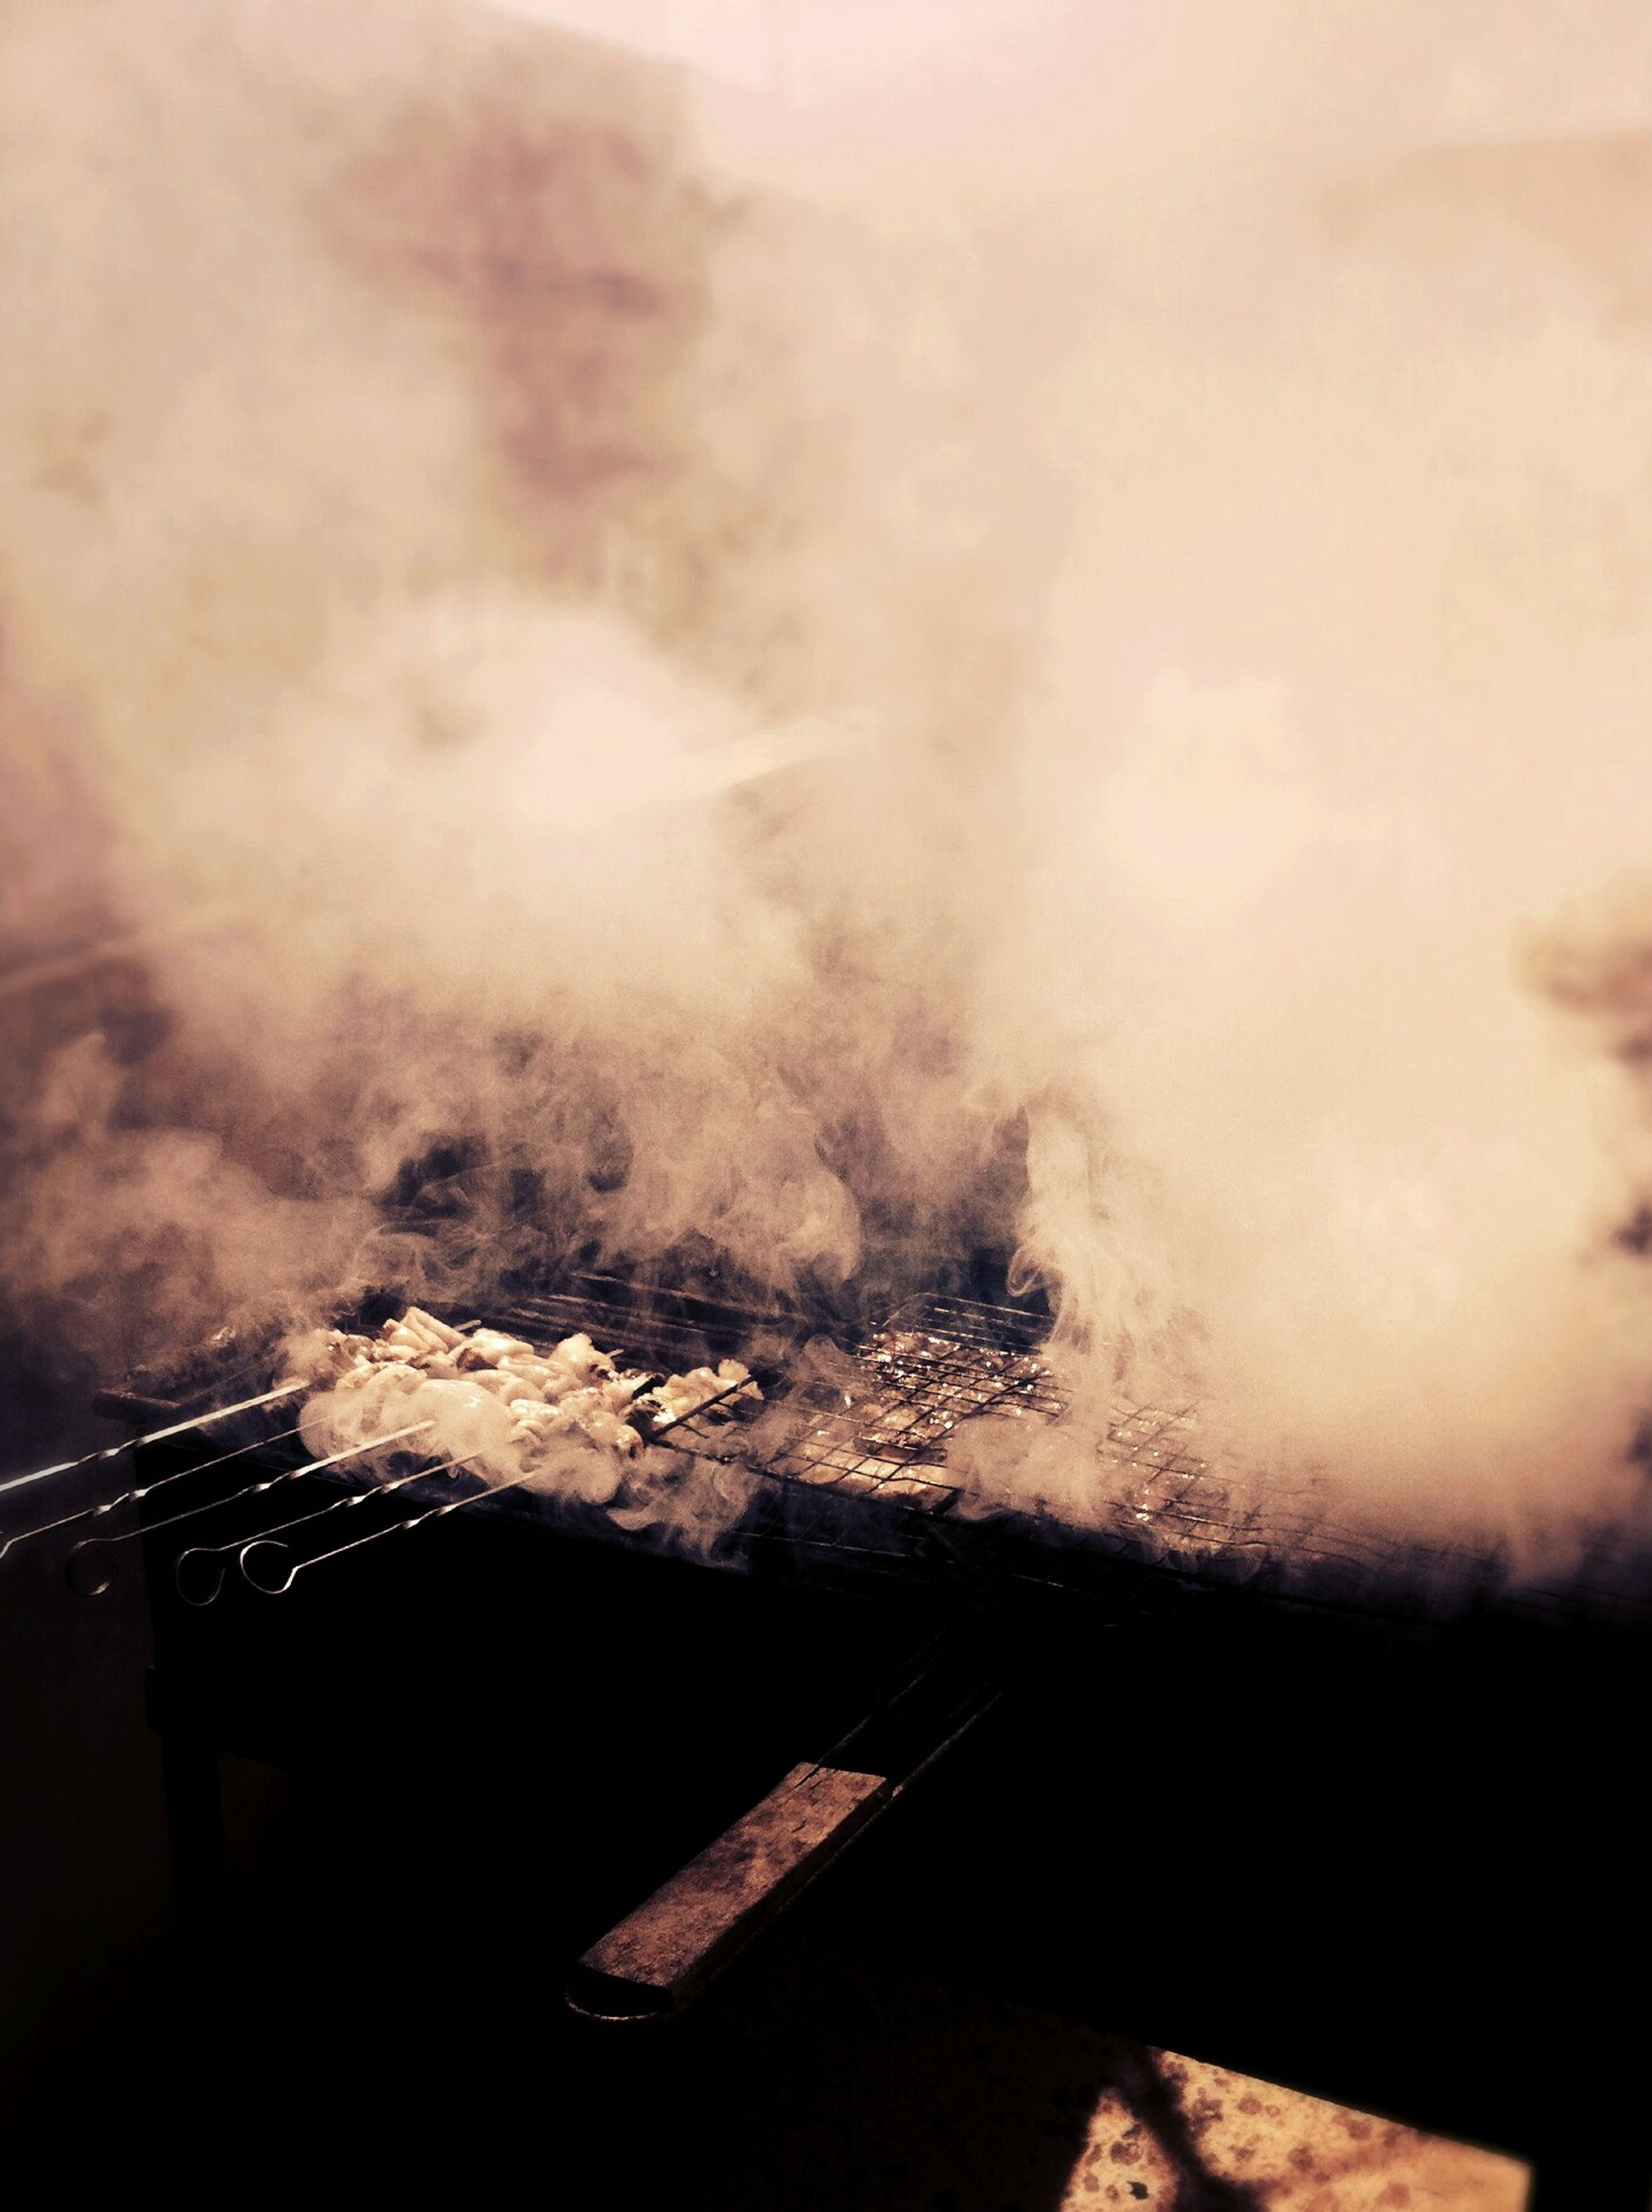 no people, smoke - physical structure, indoors, nature, sky, close-up, day